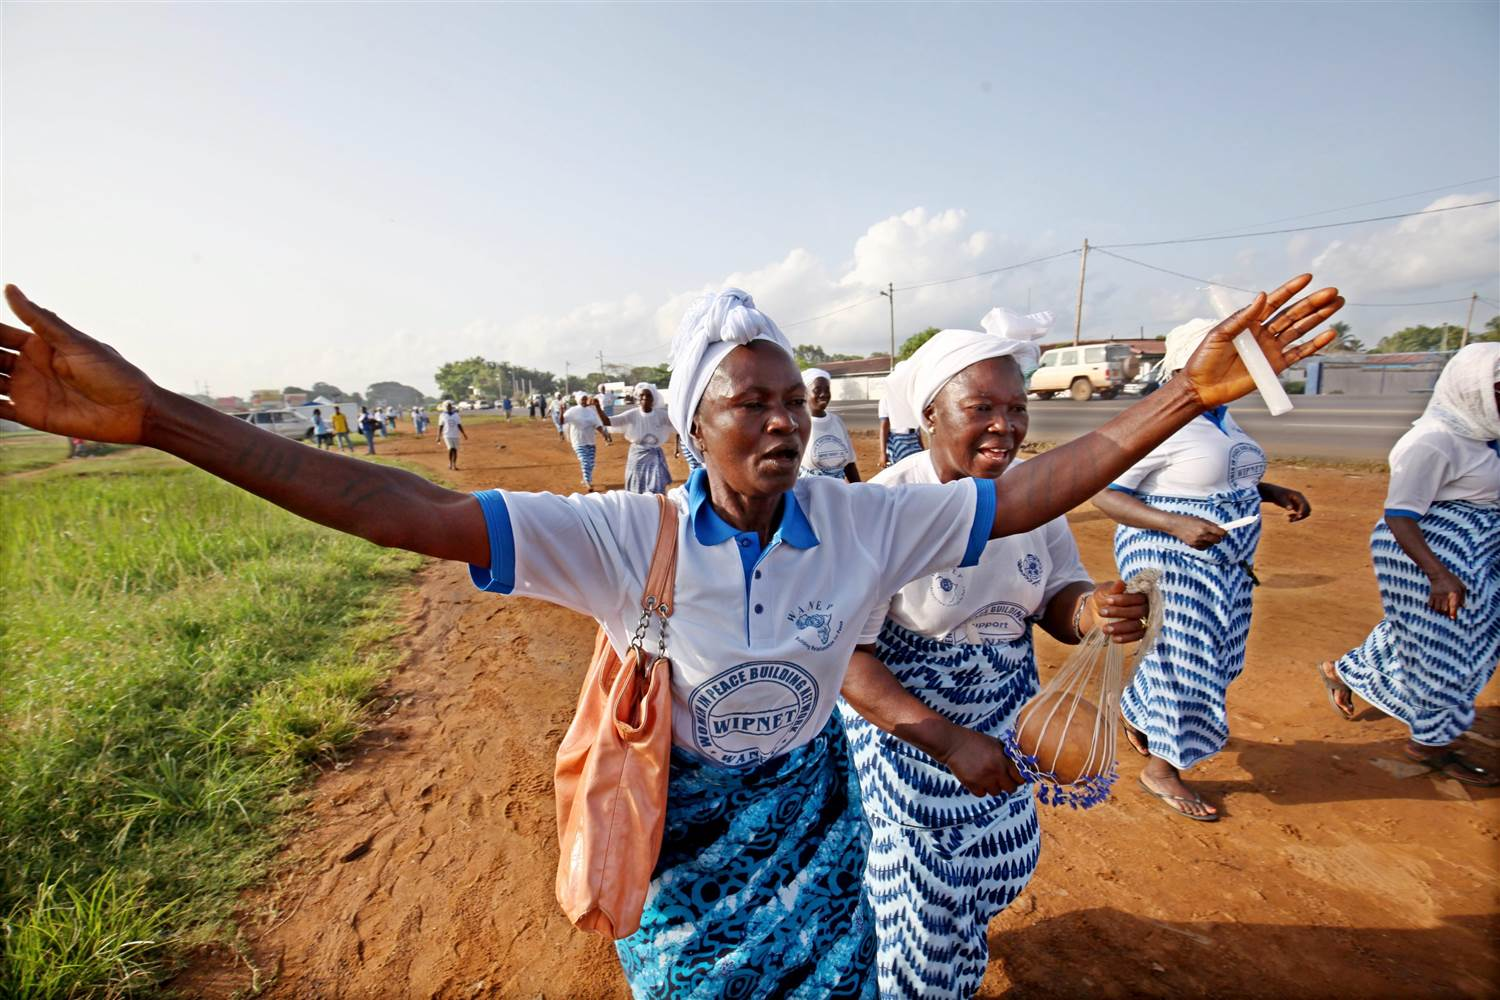 Liberia women celebrate in Monrovia, Liberia, 09 May 2015, the news of the end of deadly ebola outbreak in the country. AHMED JALLANZO / EPA